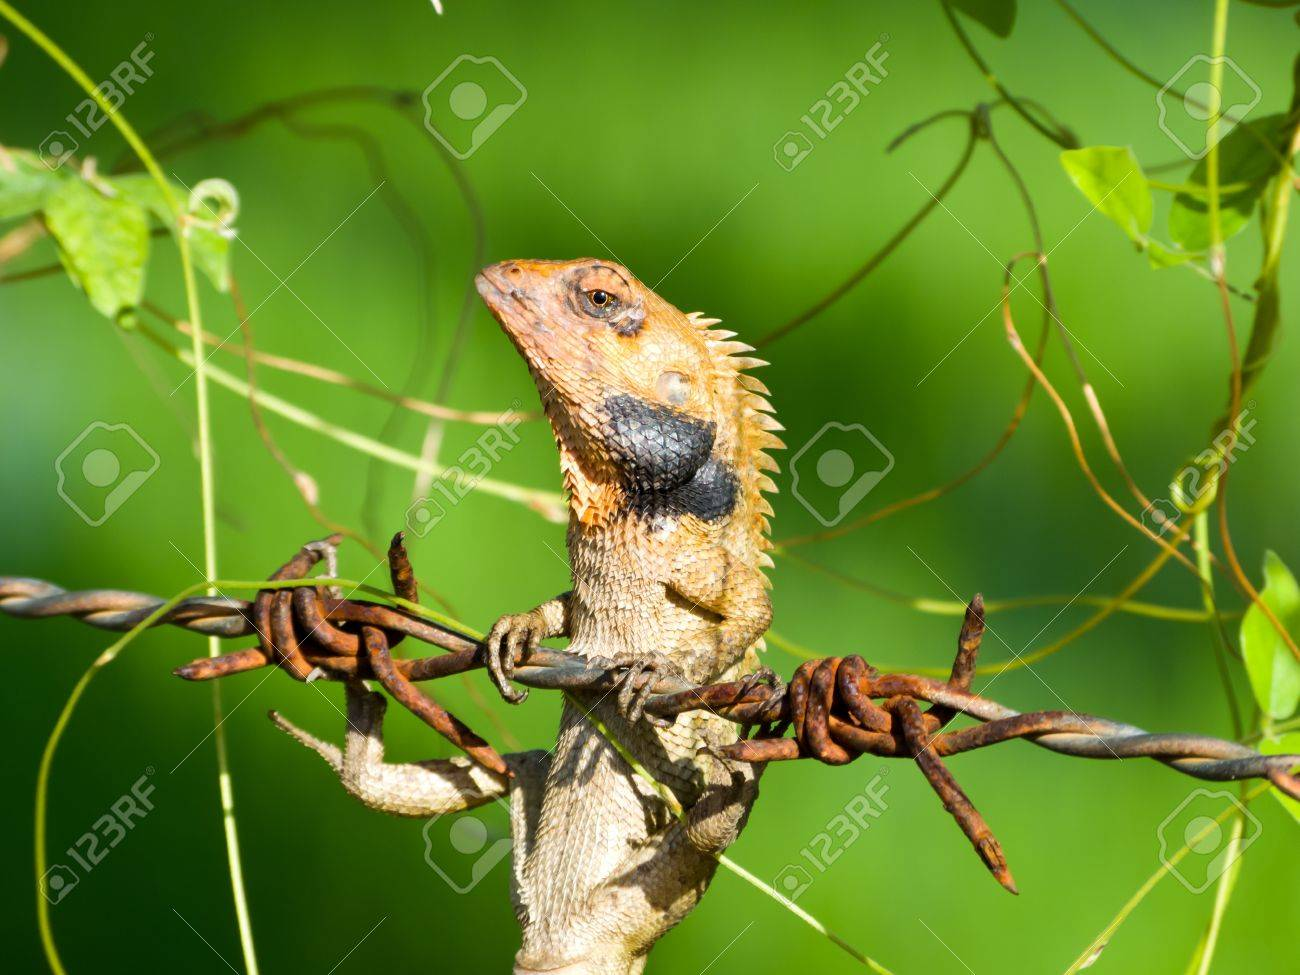 Chameleon hang by barbed wire over green background Stock Photo - 14558026